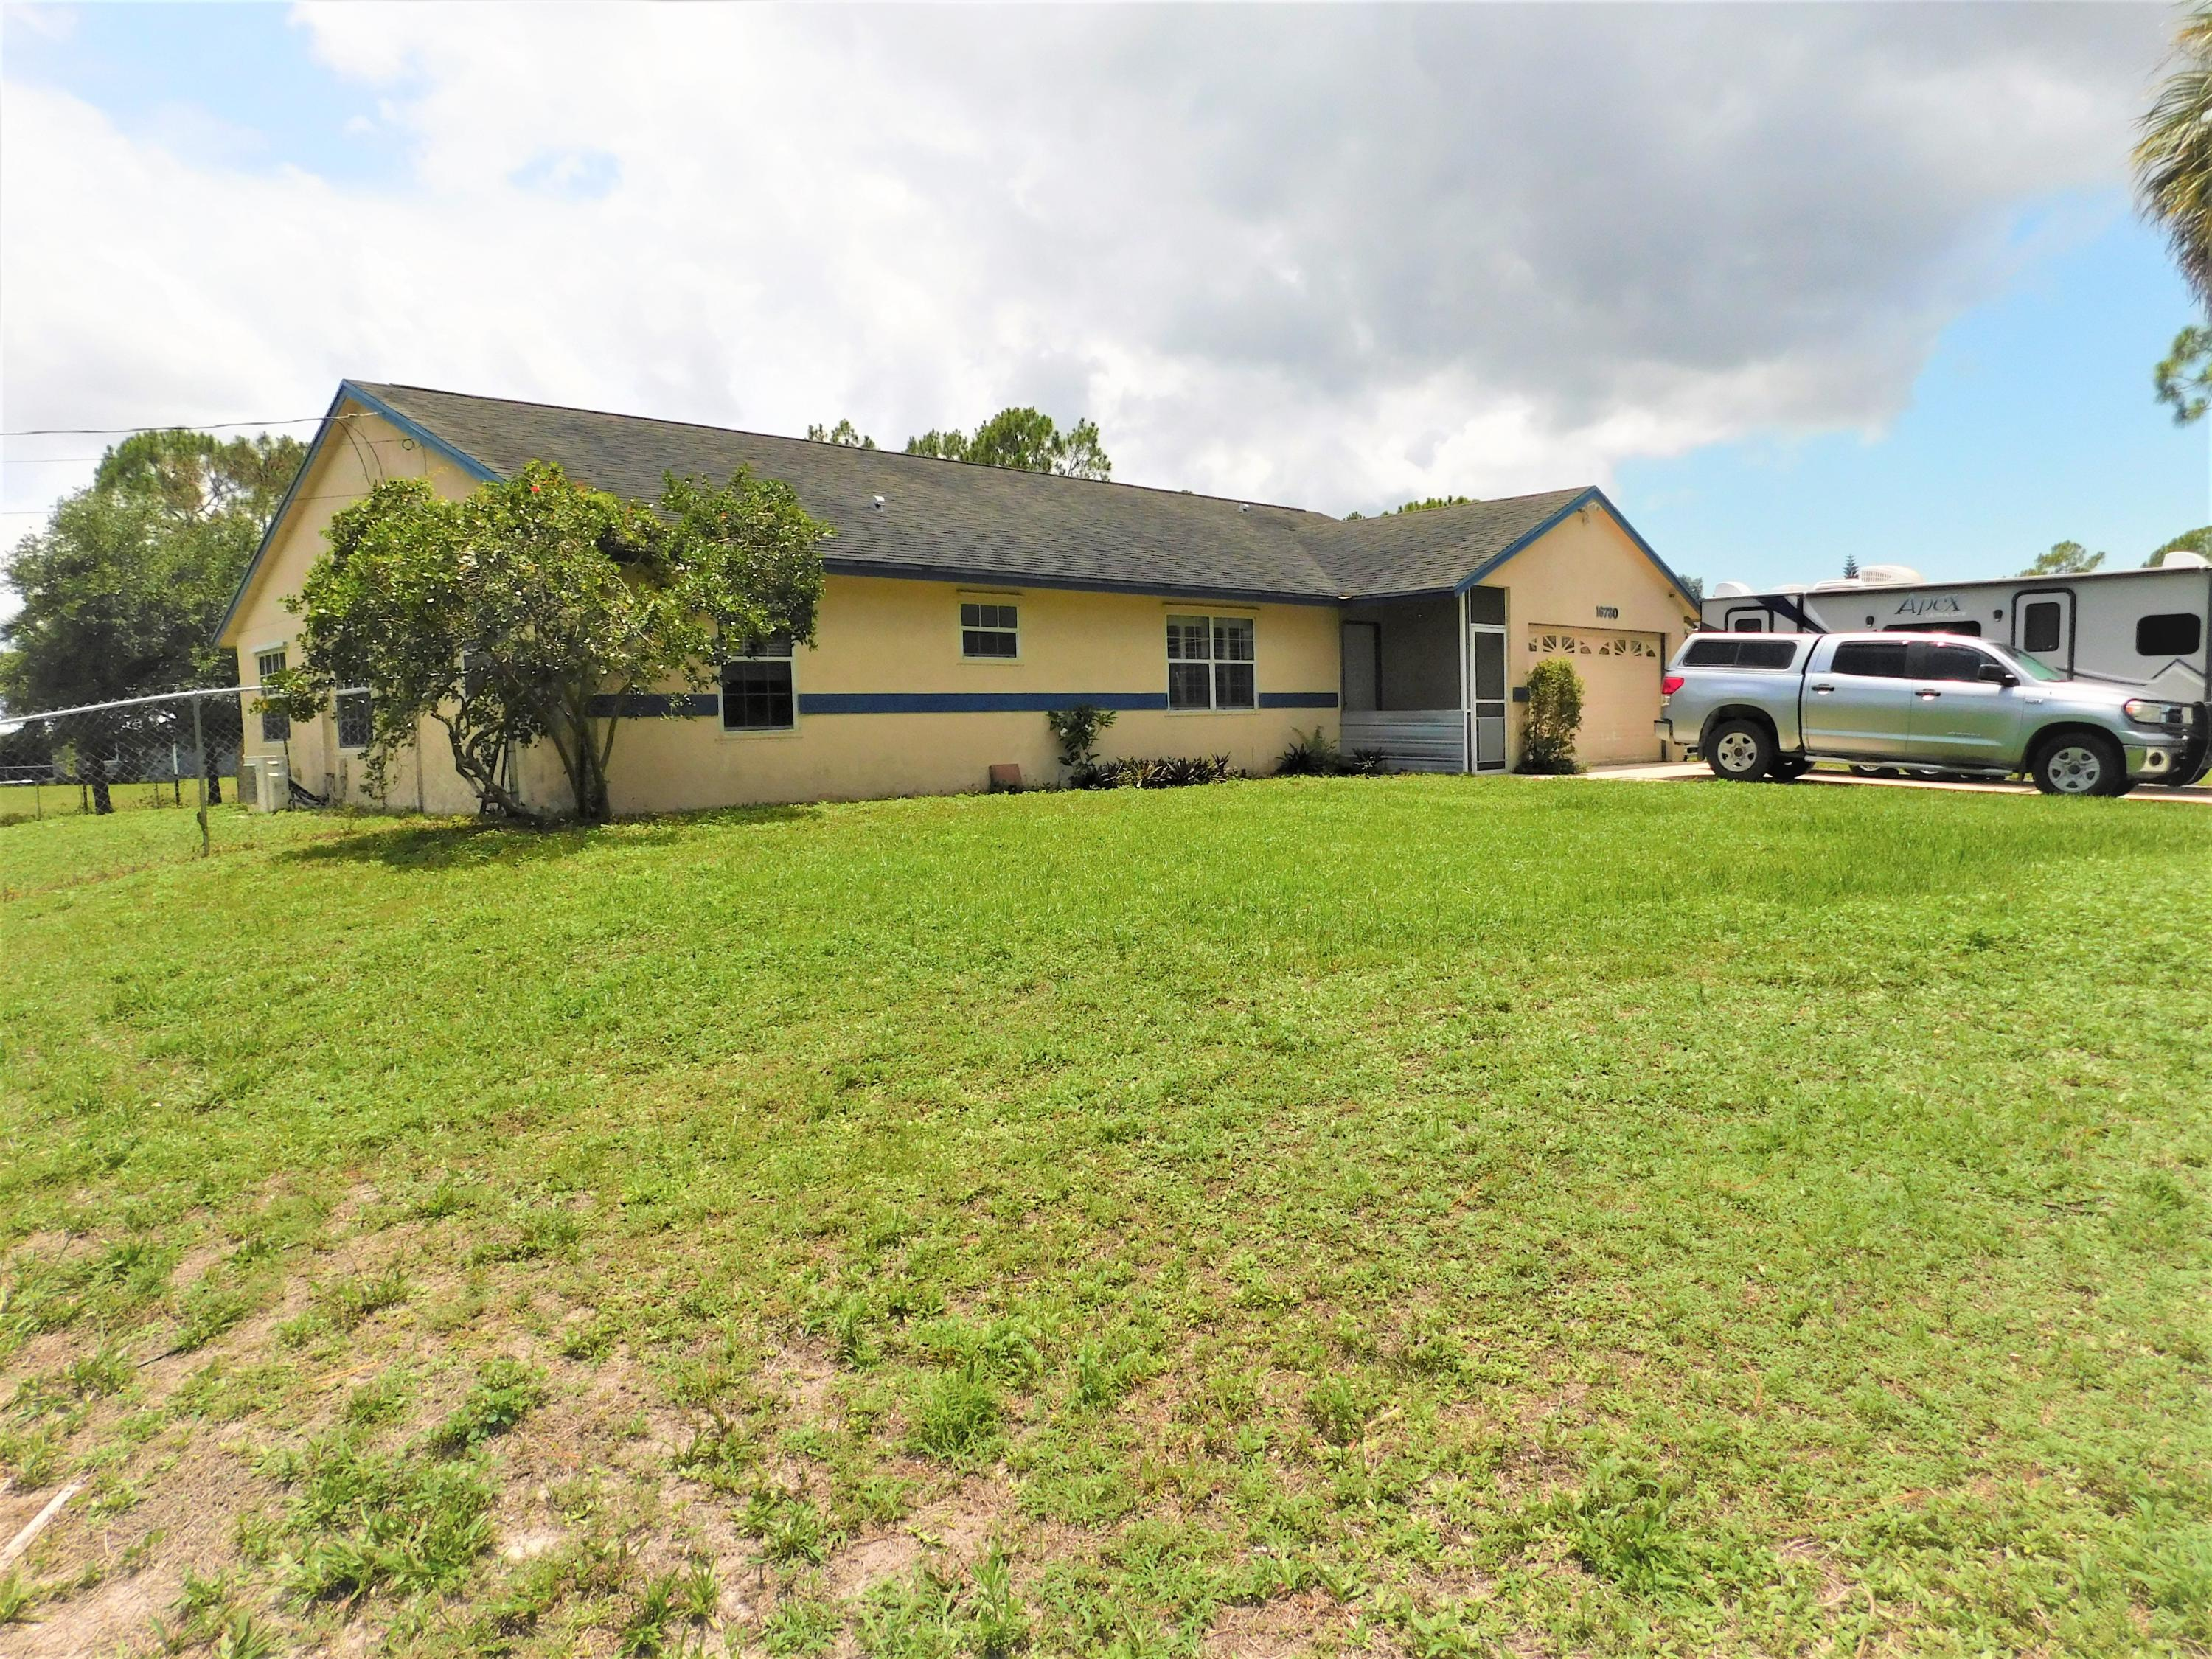 16730 79th Court N, Loxahatchee in Palm Beach County, FL 33470 Home for Sale